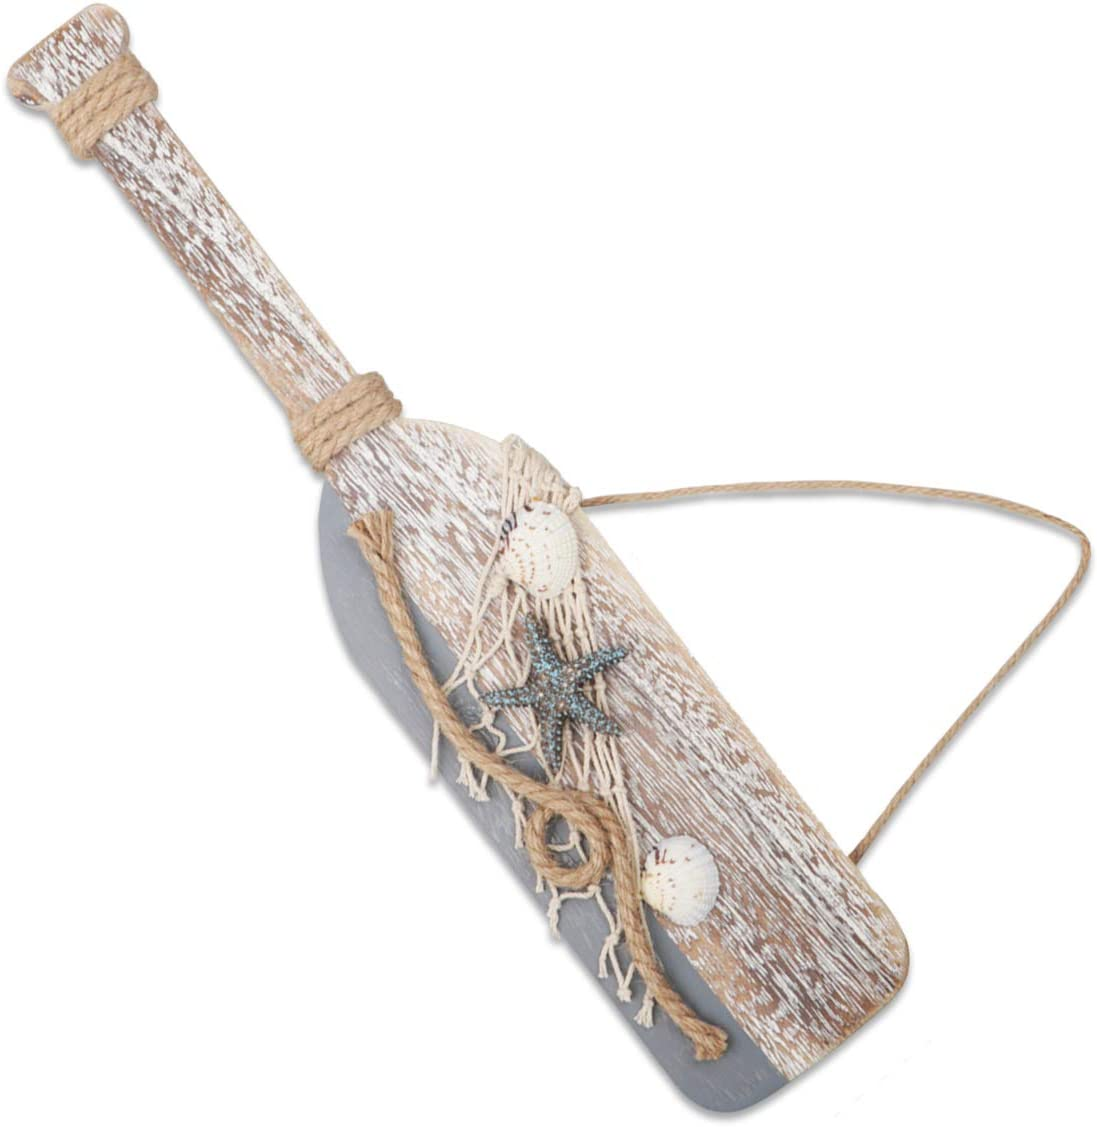 "YiYa 15.7"" Wooden Decor Oar with Starfish and Shells for Nautical Decoration, Wall Decor Door Hanging Ornament Beach Theme Home Decoration"